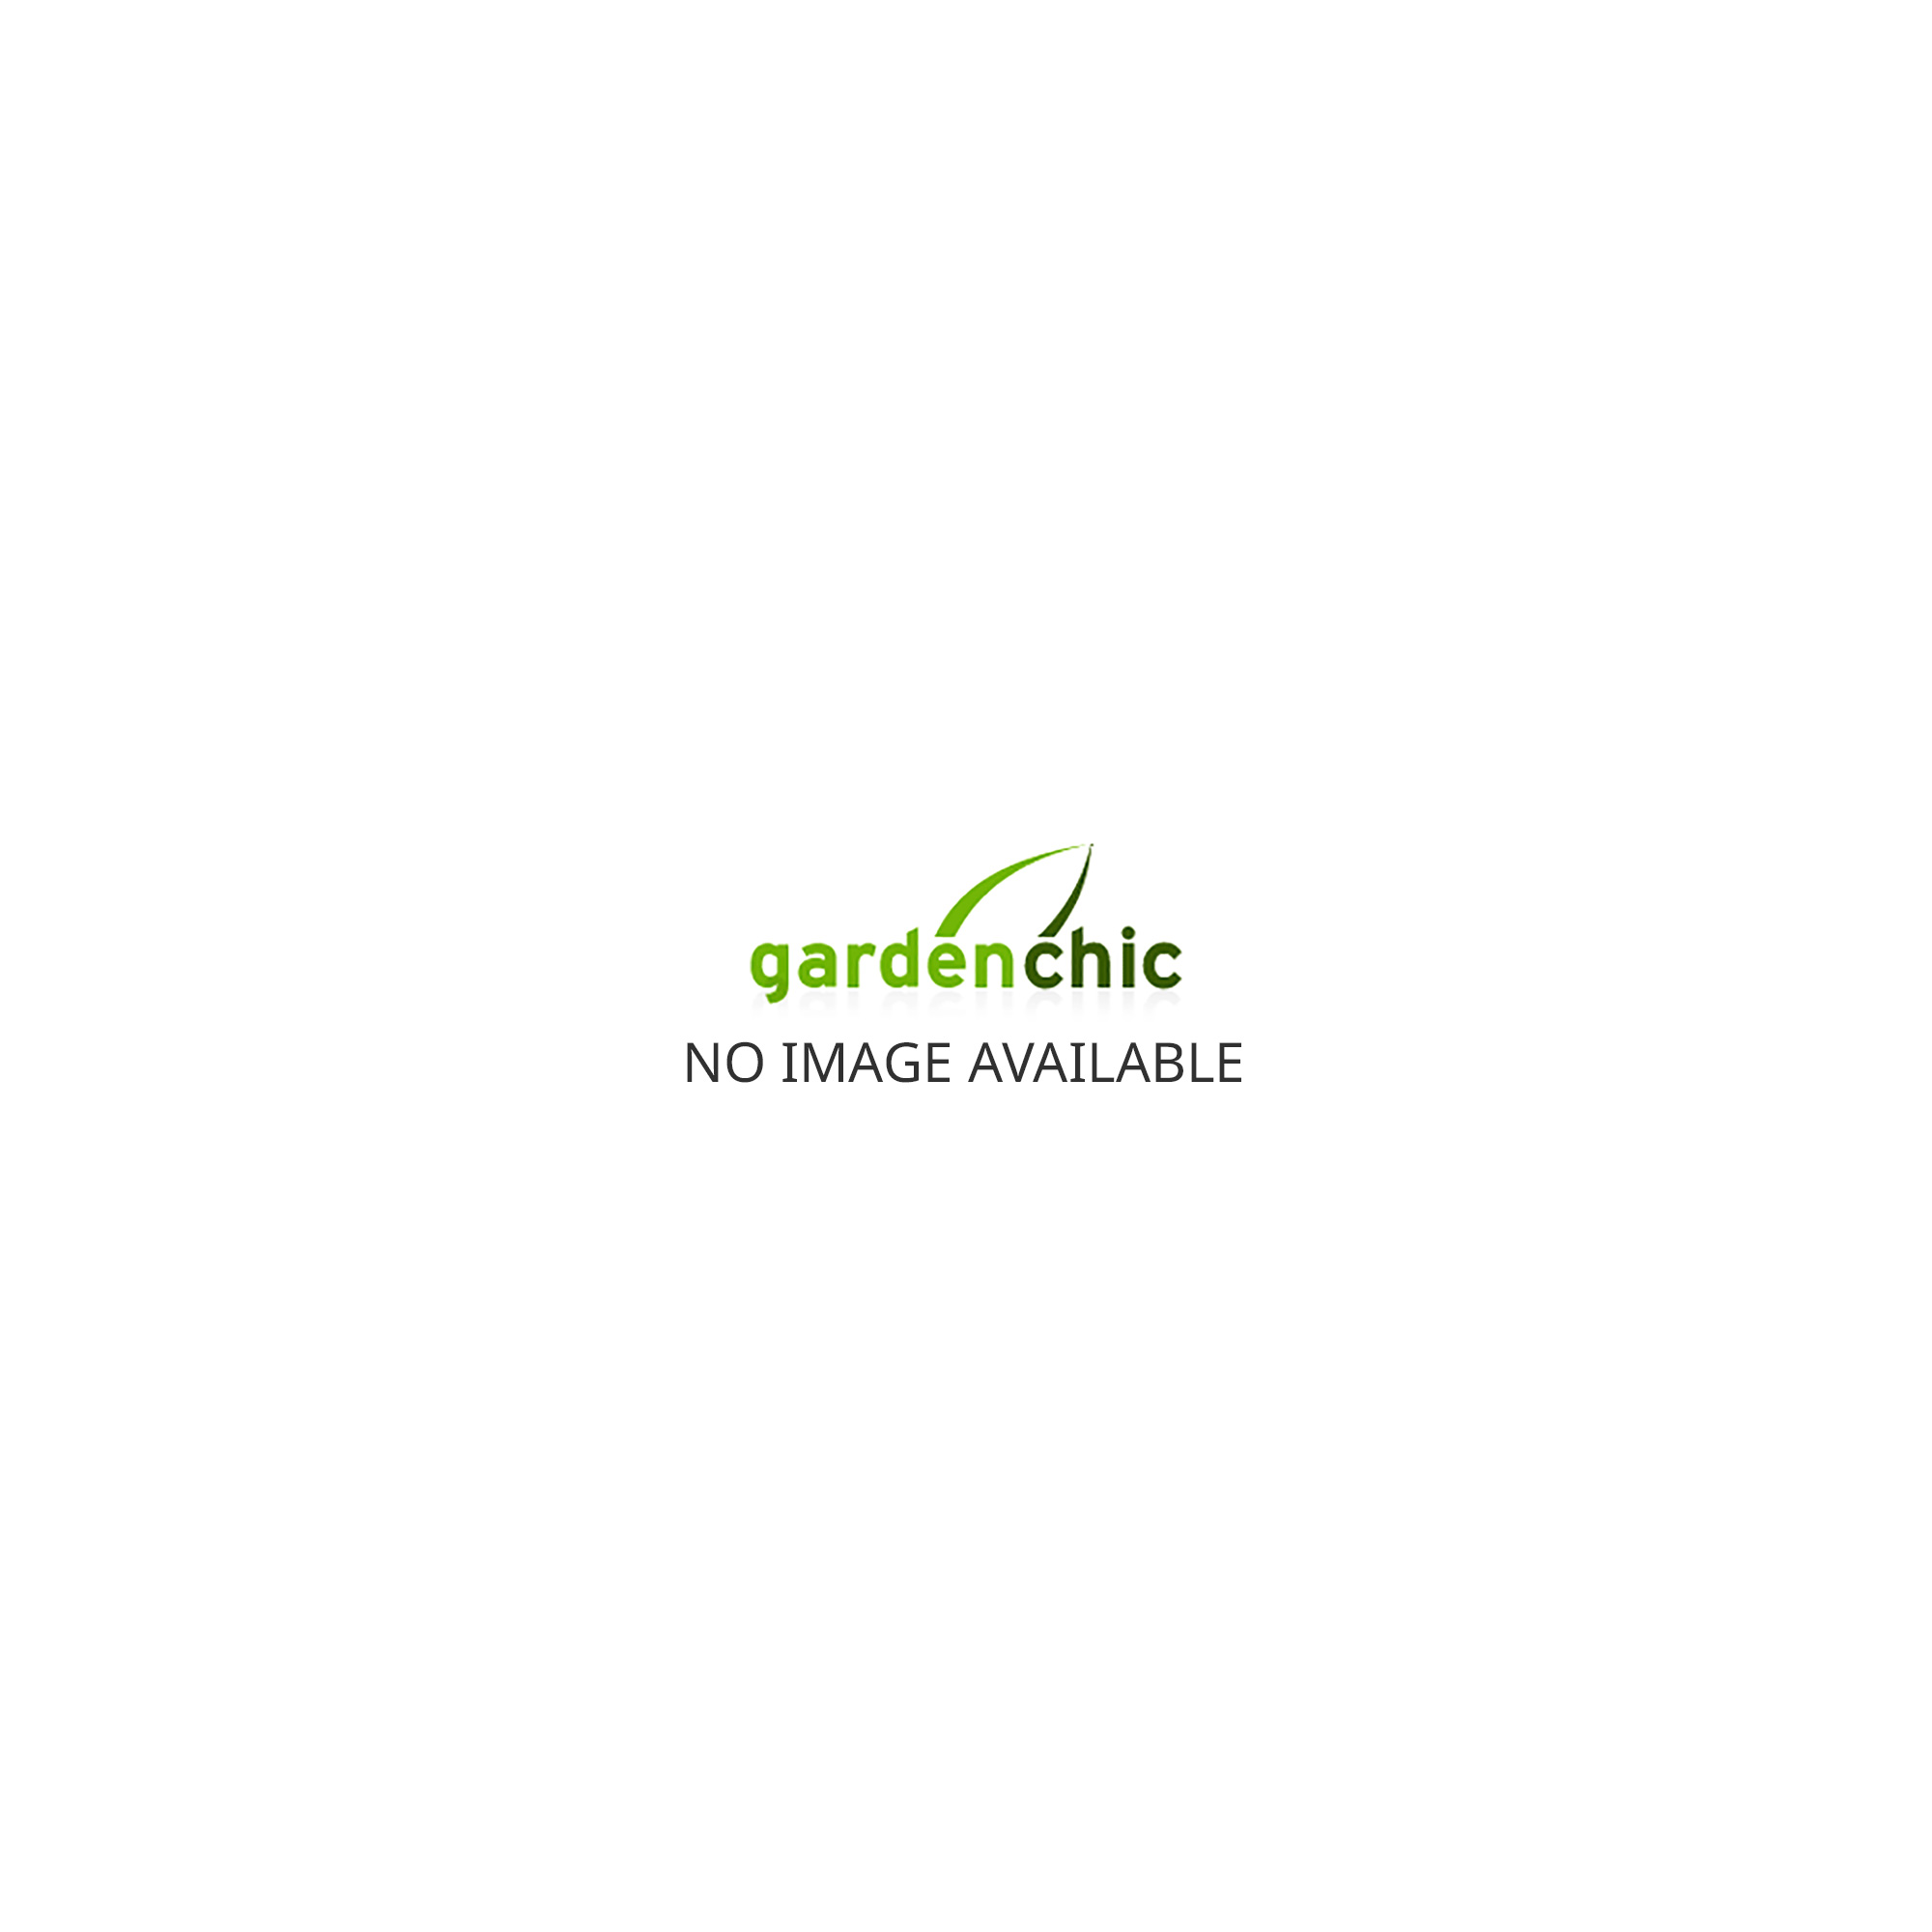 IDA 1300 Wall Garden 6ft x 2ft Greenhouse - Silver FREE Matching Base until 31st July 2018